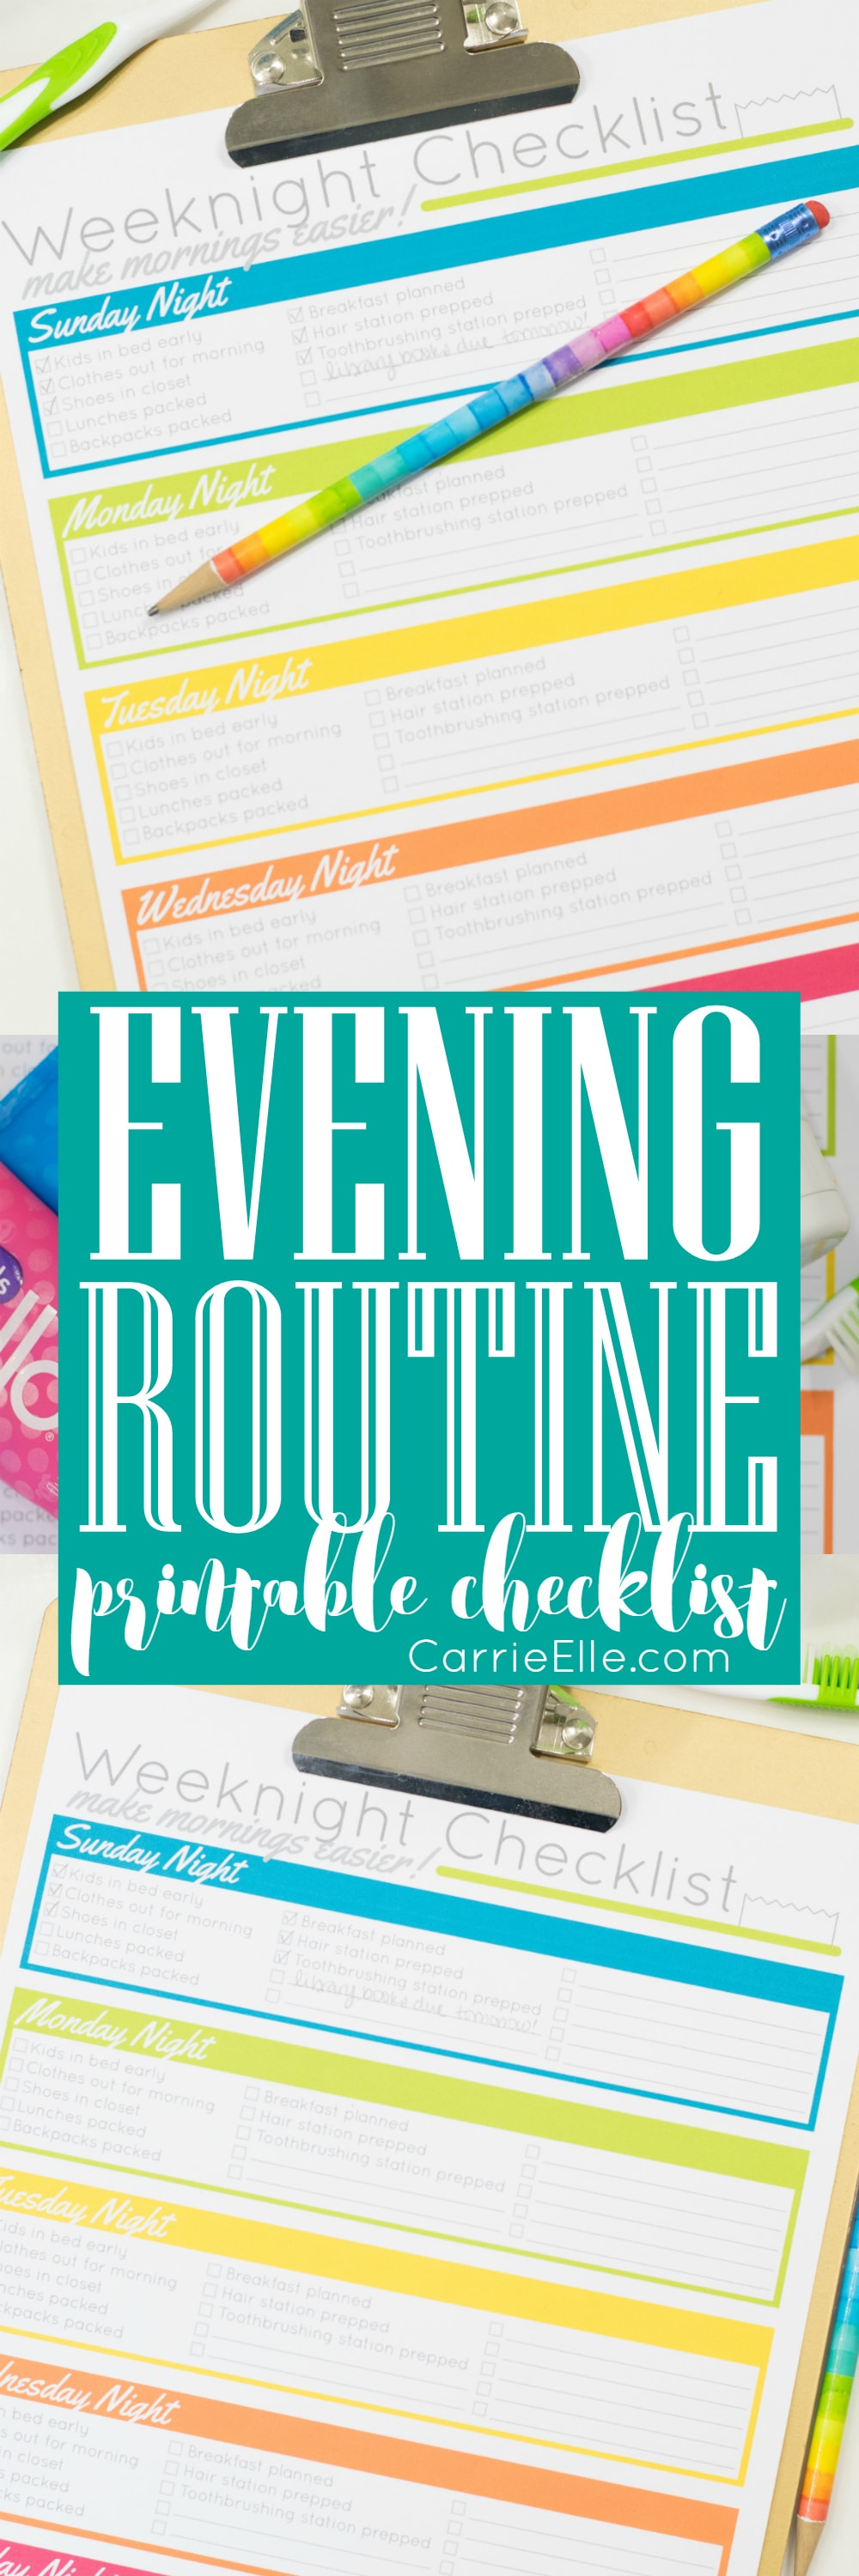 Evening Routine Checklist